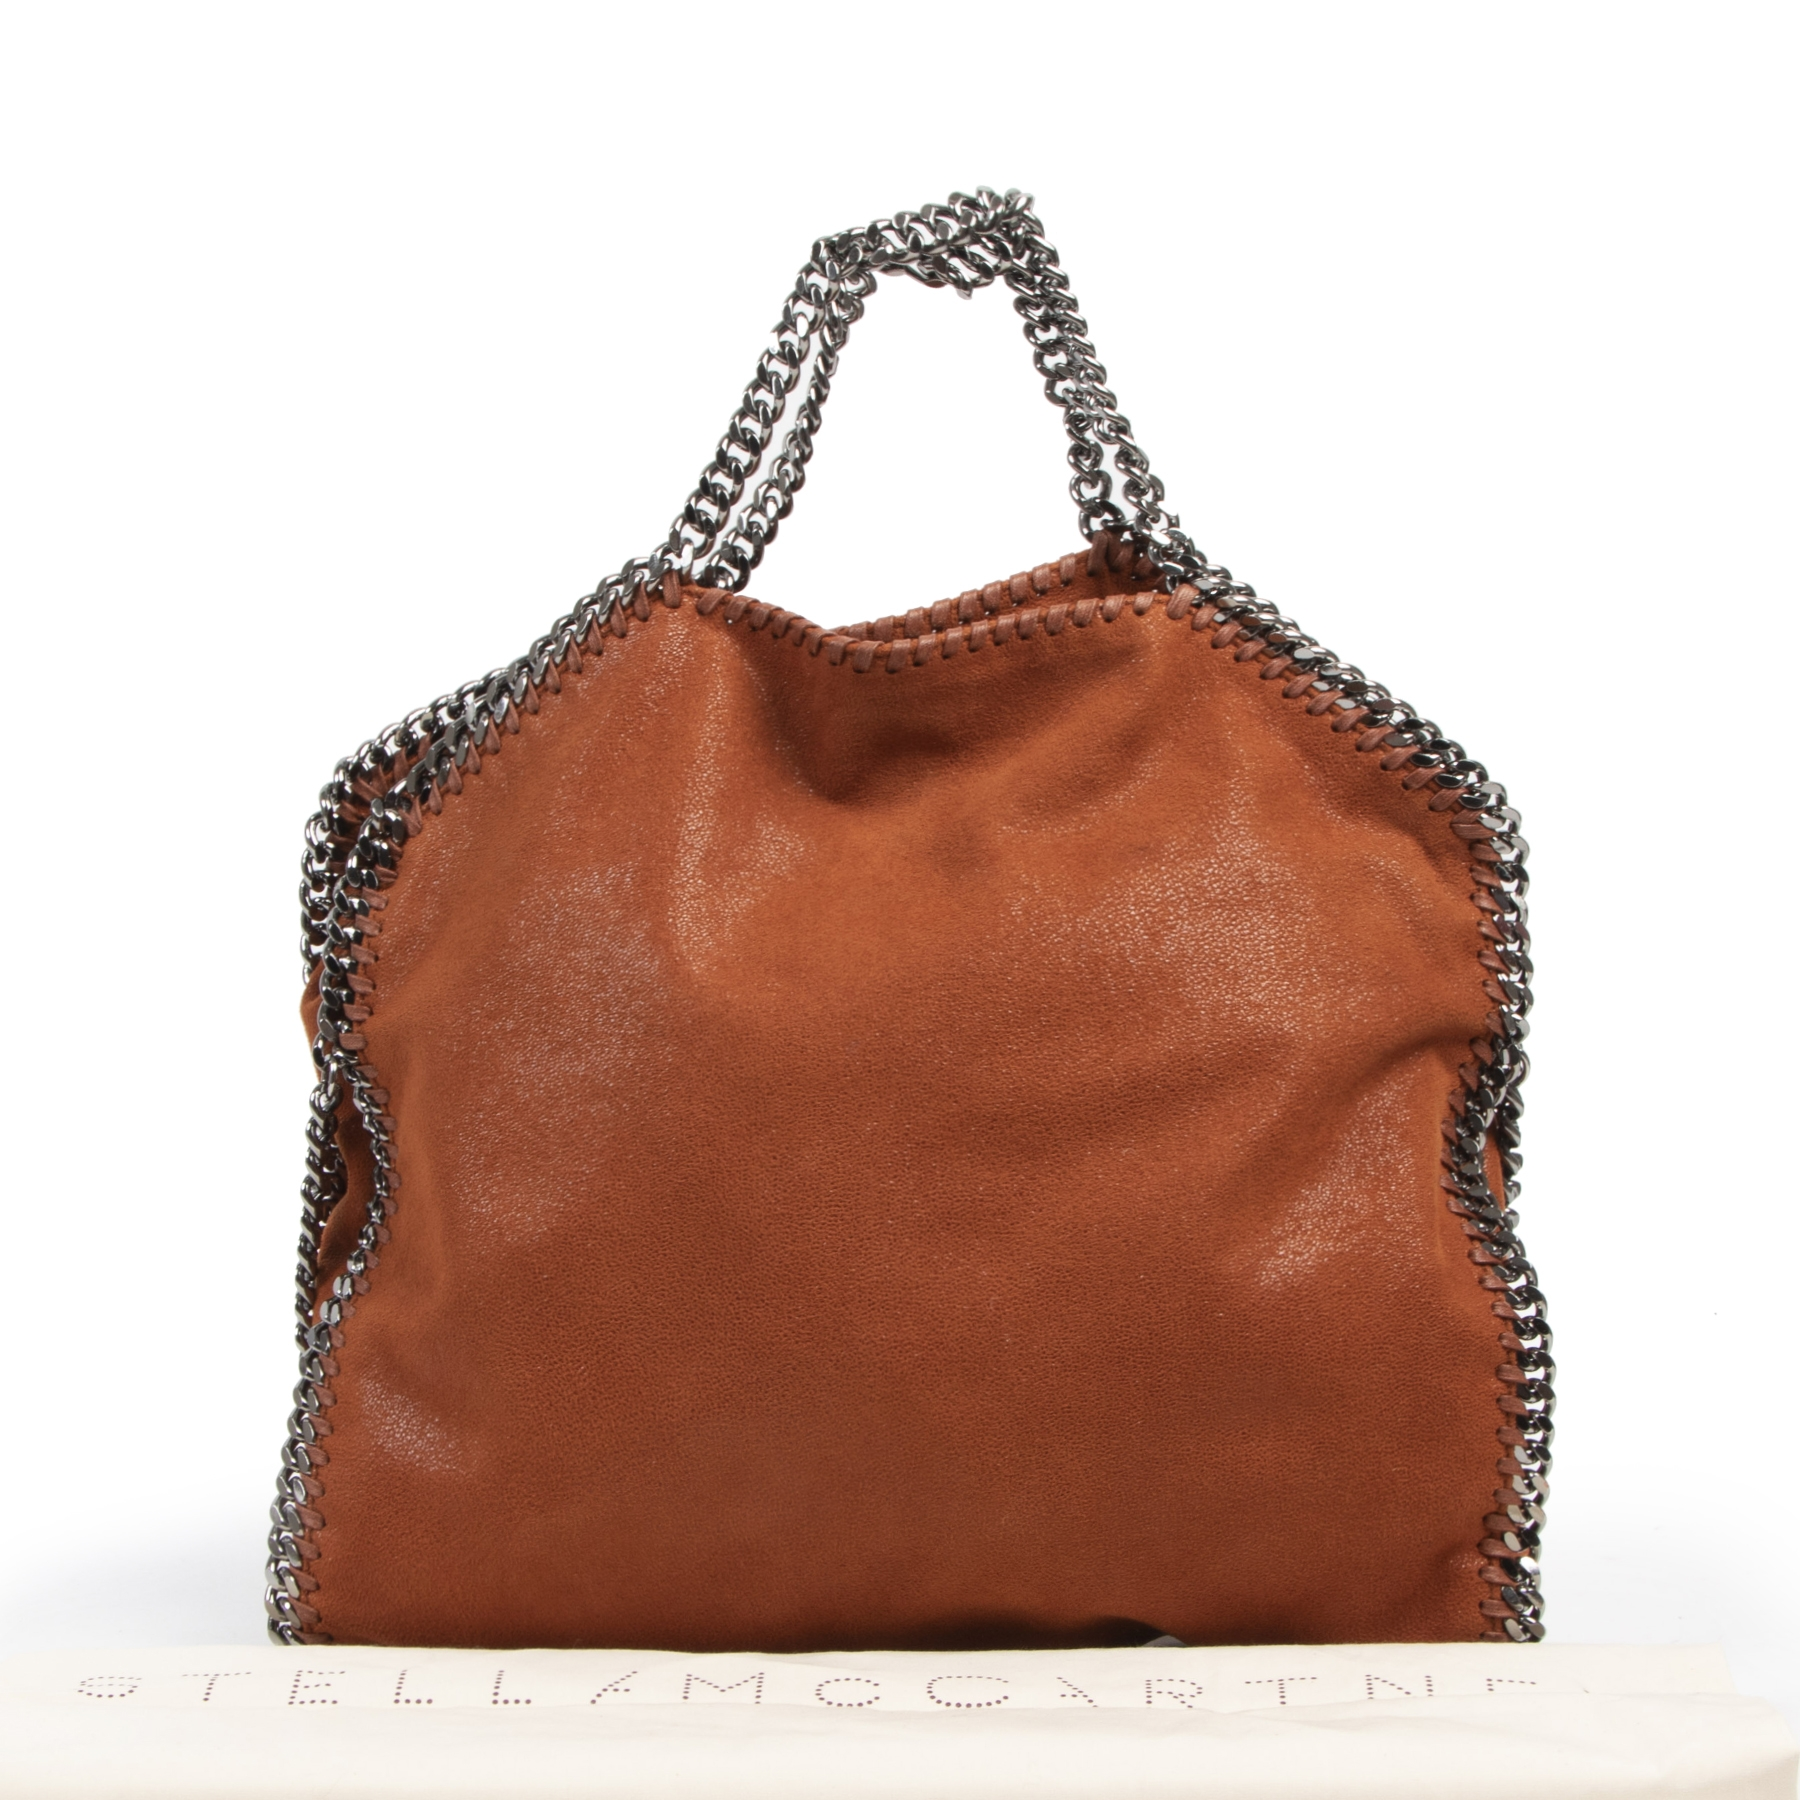 Authentic second-hand vintage Stella McCartney Orange Leather Falabella Tote buy online webshop LabelLOV